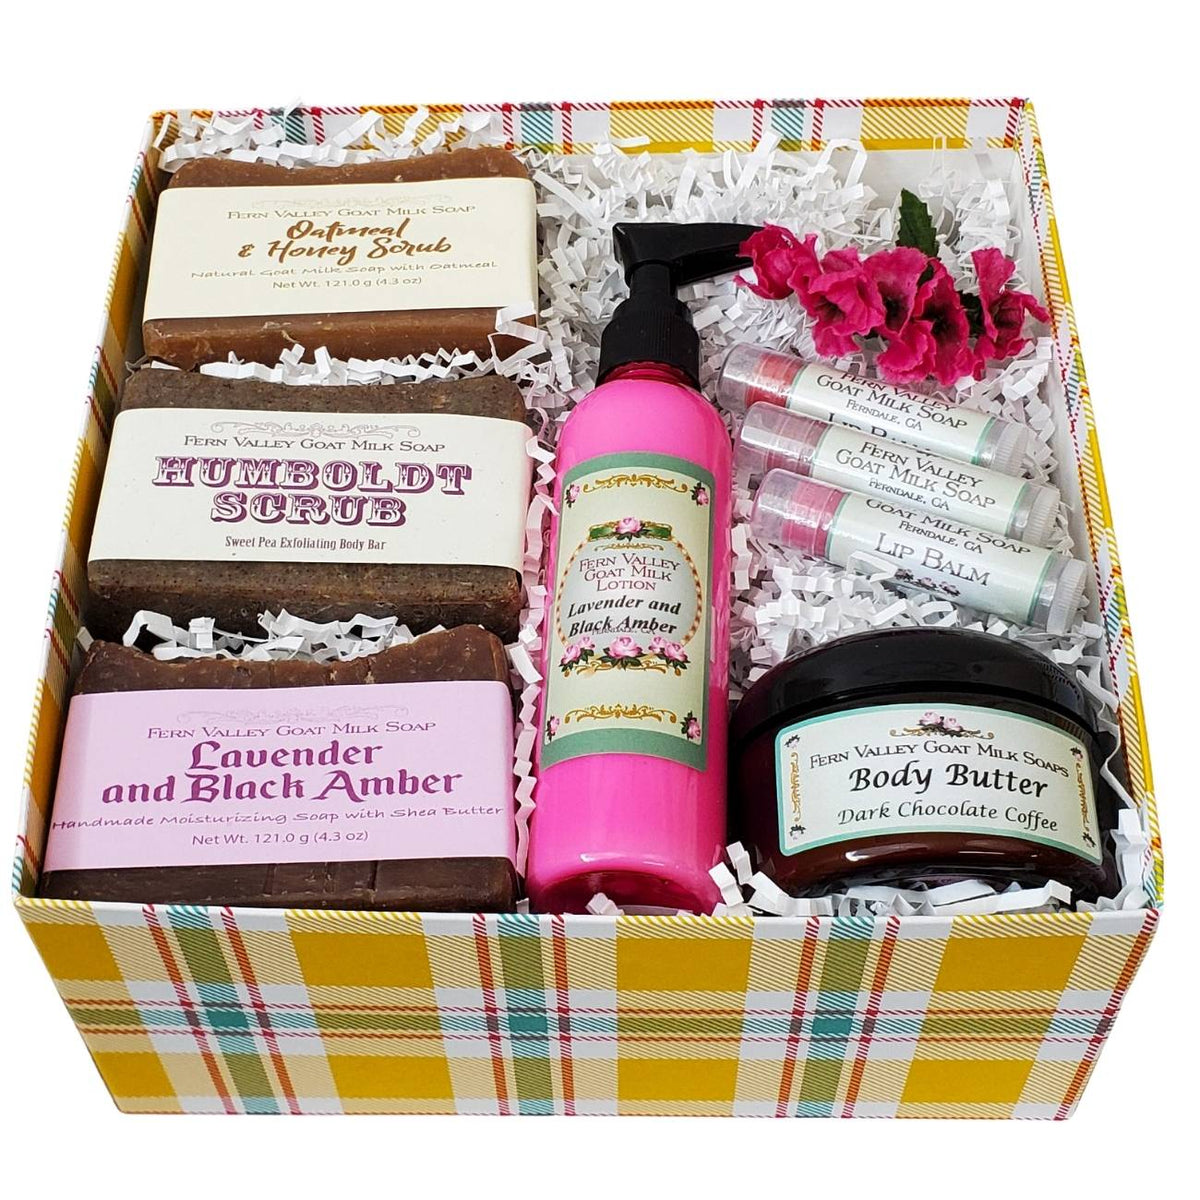 Novelty Gift Box Filled With Handmade Soaps and Lotion